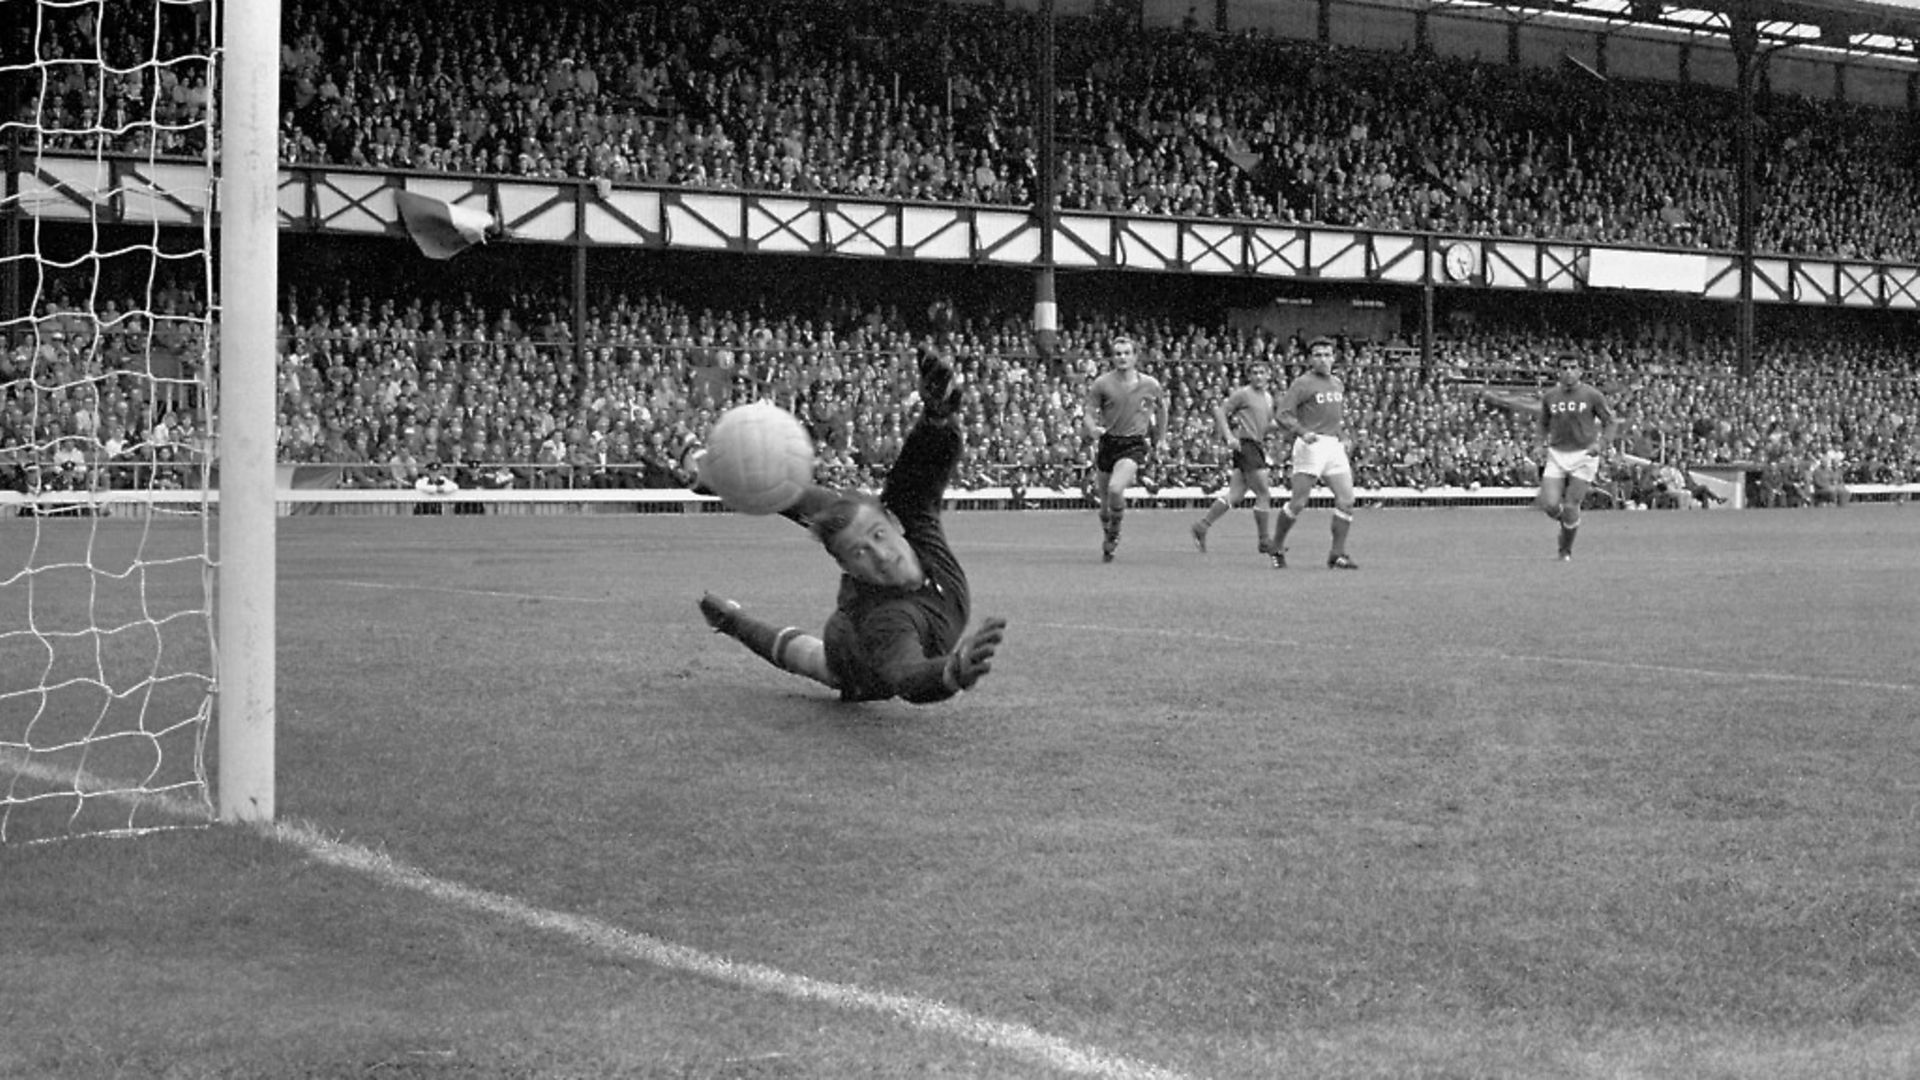 Russia's goalkeeper Lev Yashin makes a save from Italy's Sandro Mazzola, during their Group 4 1966 World Cup match at Roker Park, in Sunderland. - Credit: PA Archive/PA Images